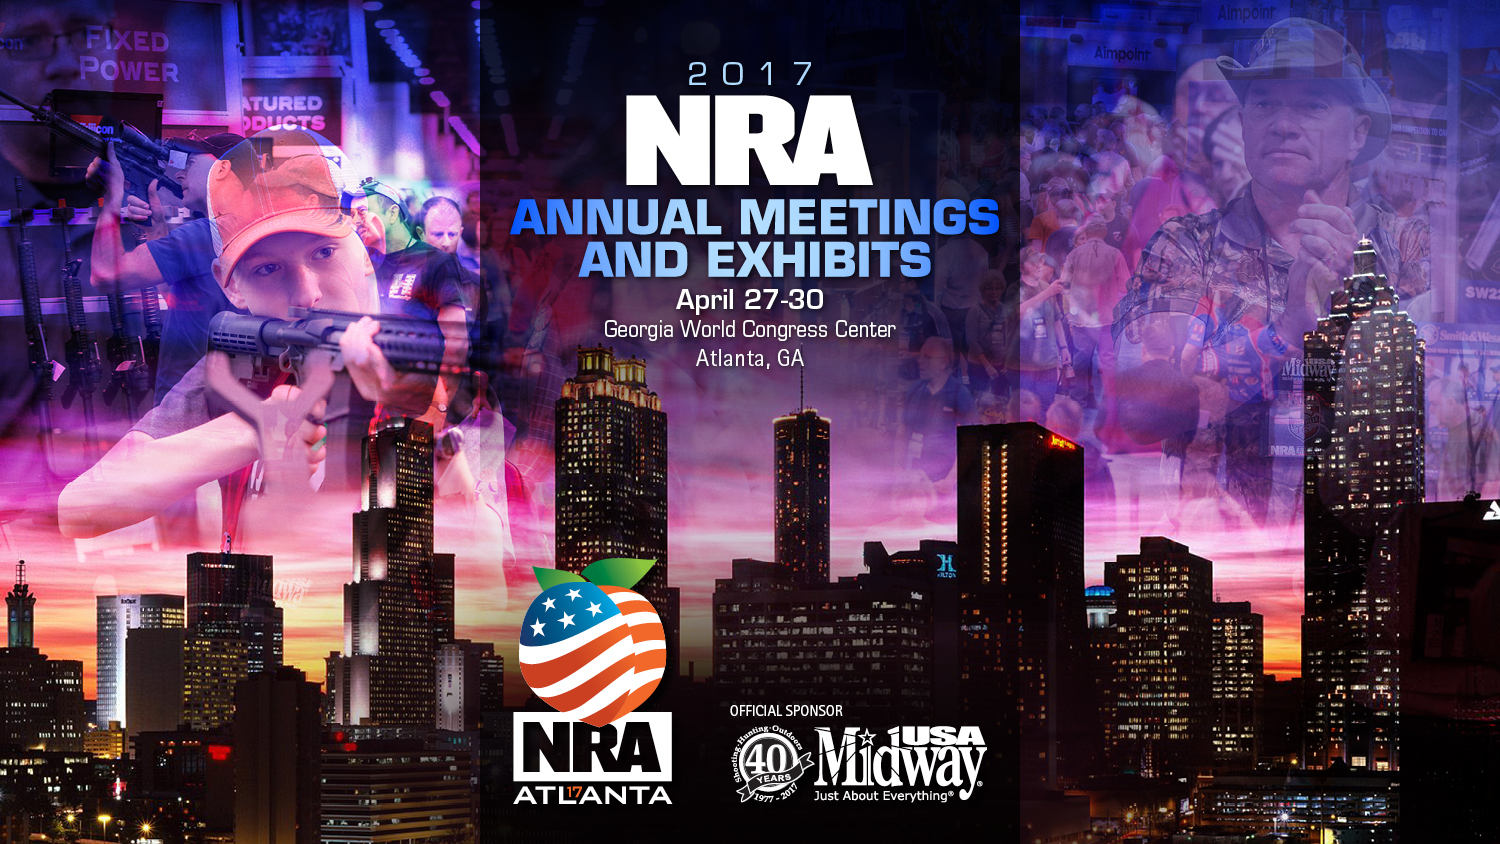 NRA Annual Meeting Events: Thursday, April 27th